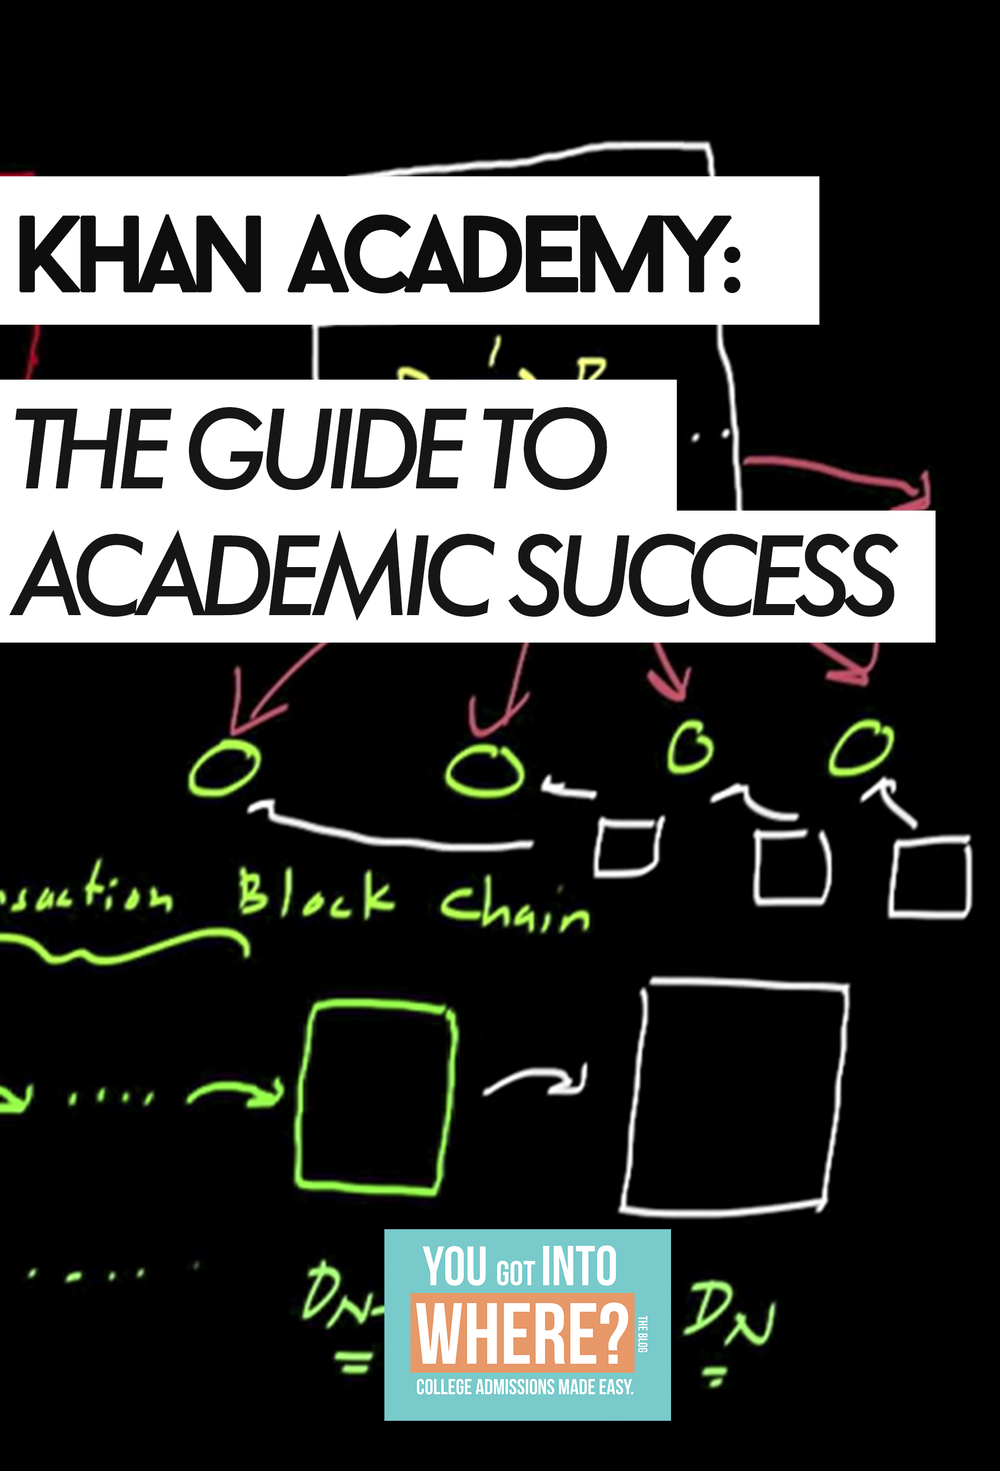 khan-academy-the-guide-to-academic-success.png